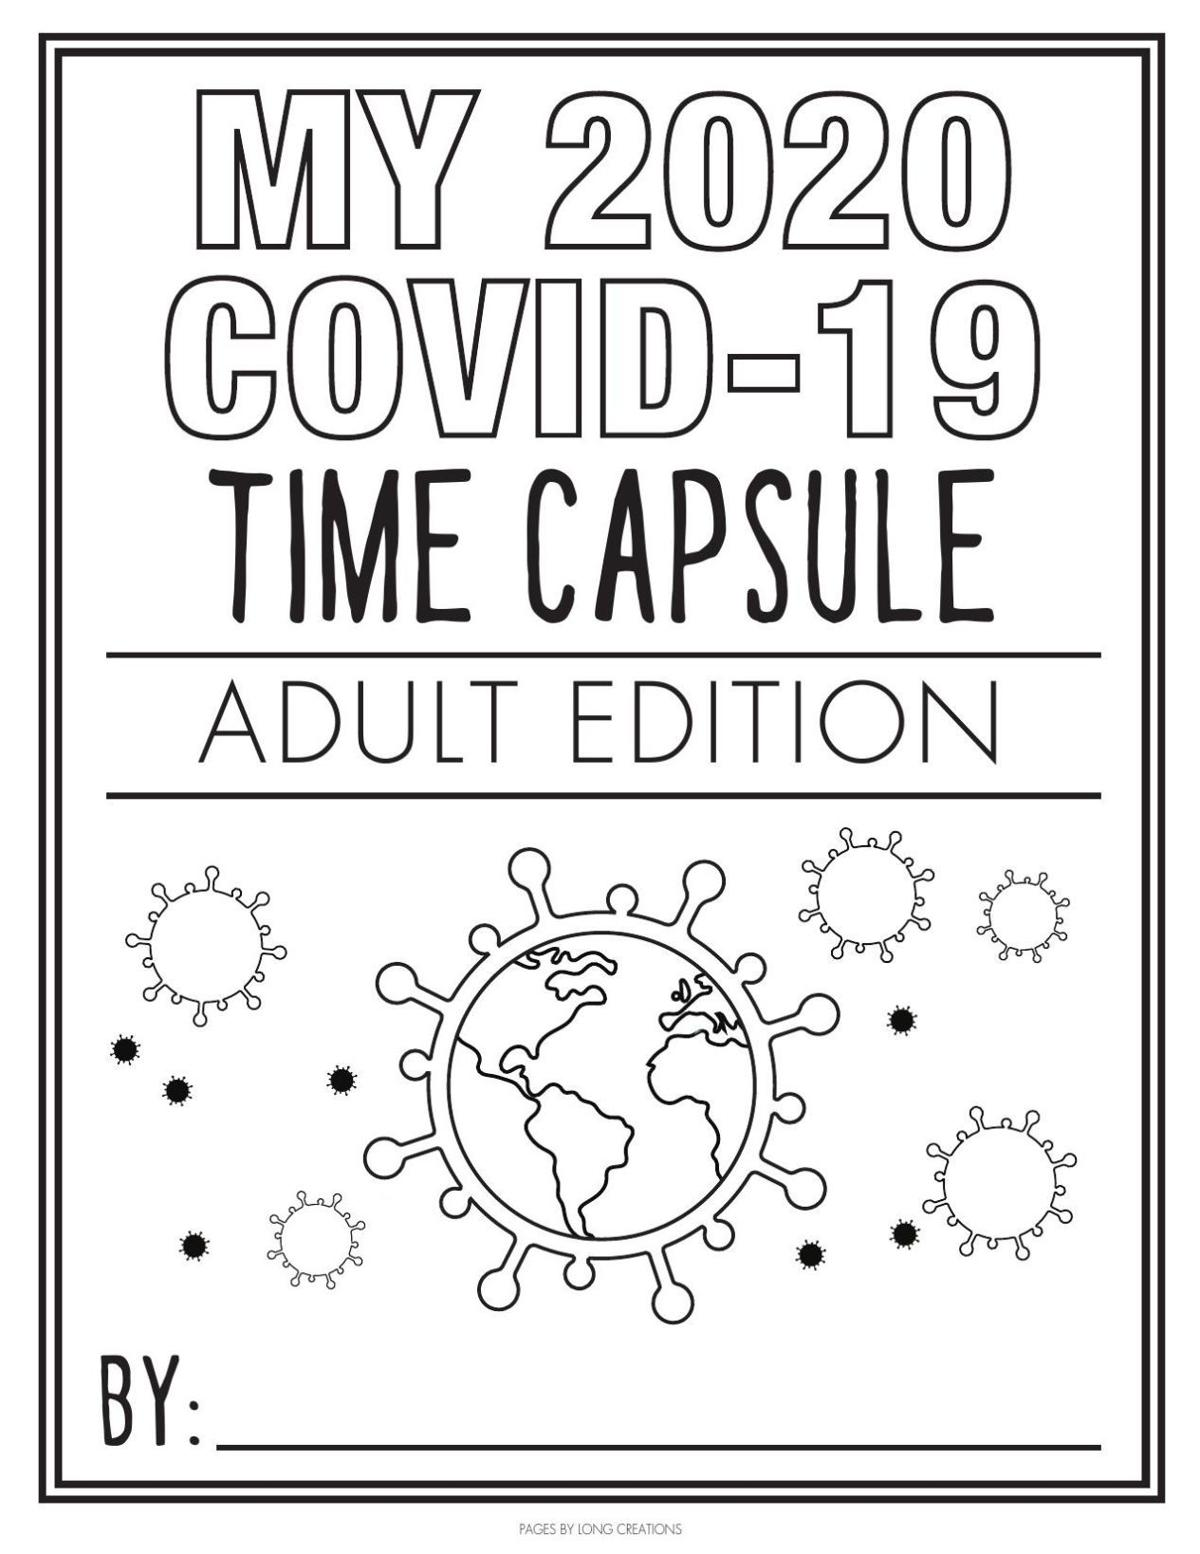 My 2020 Covid-19 Time Capsule For Adults